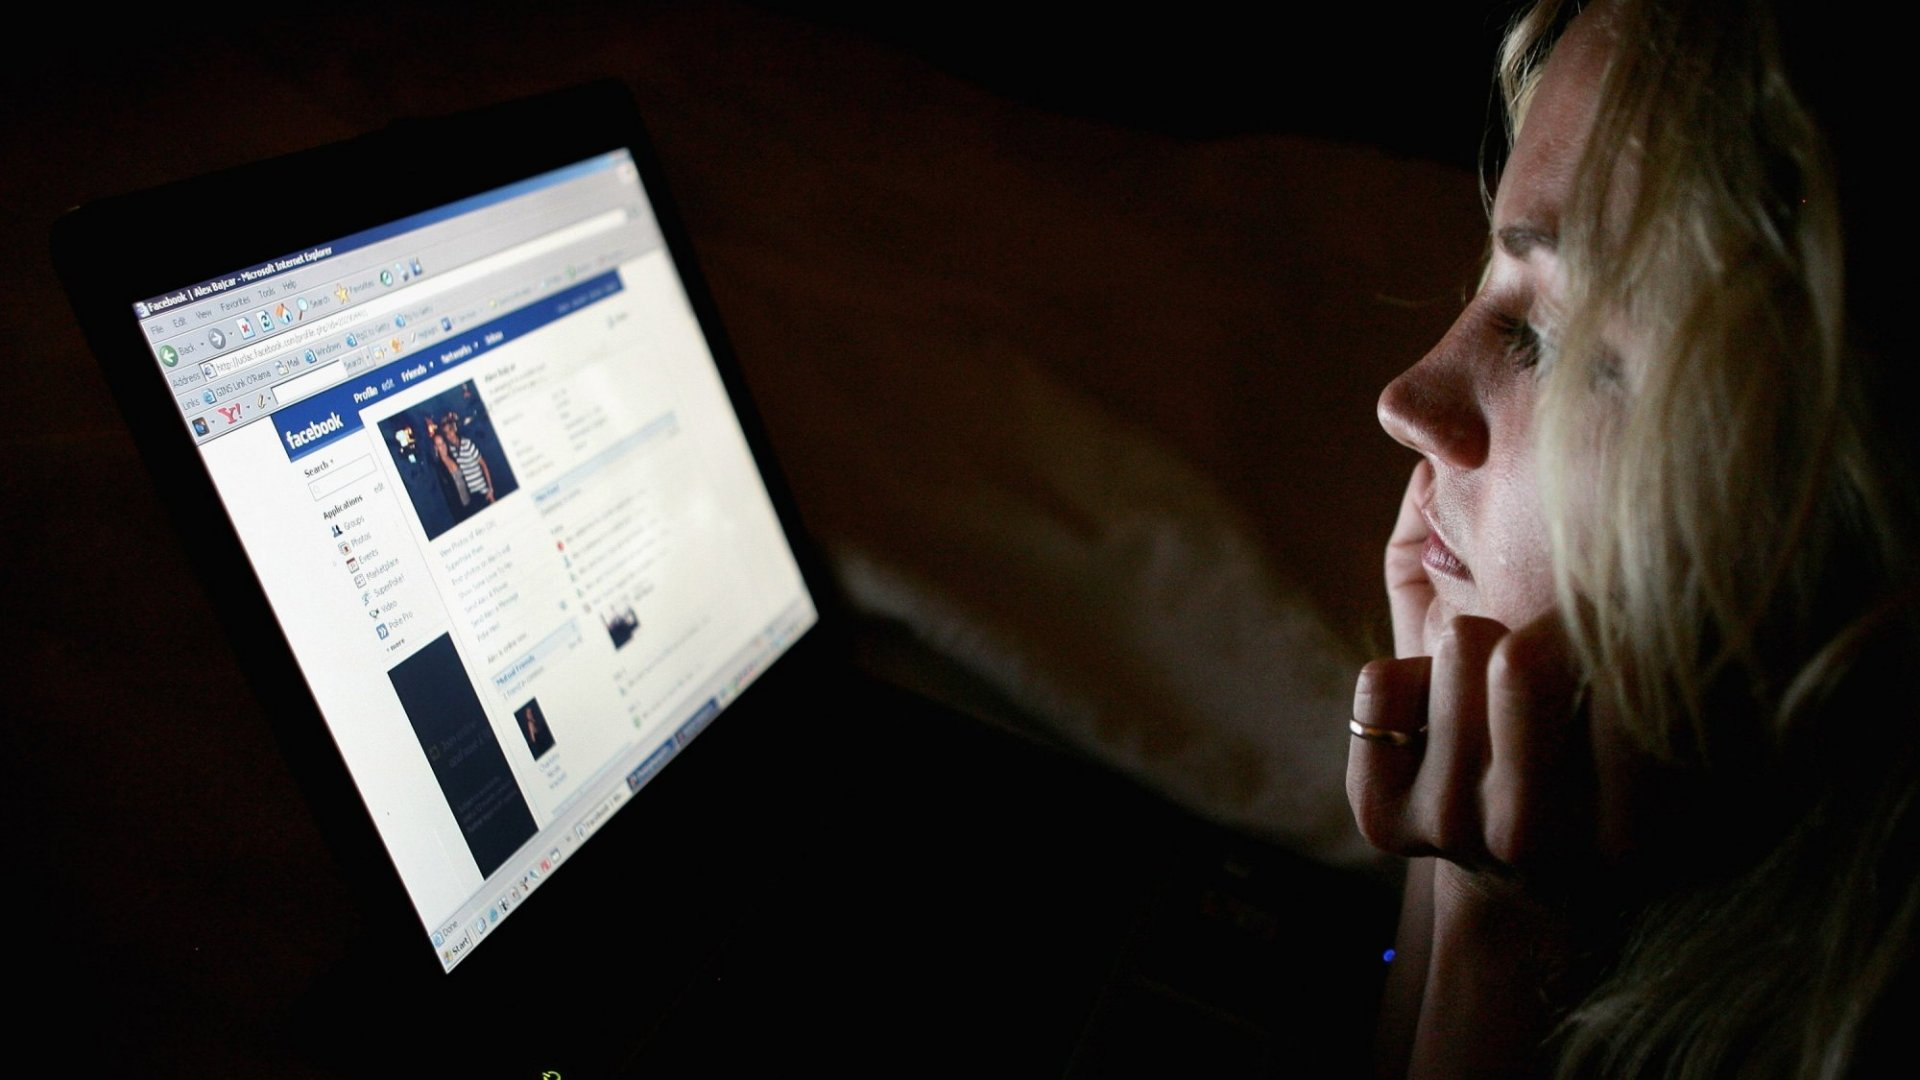 How to Cut Down on Facebook (Without Missing Out) and Feel Better About Everything